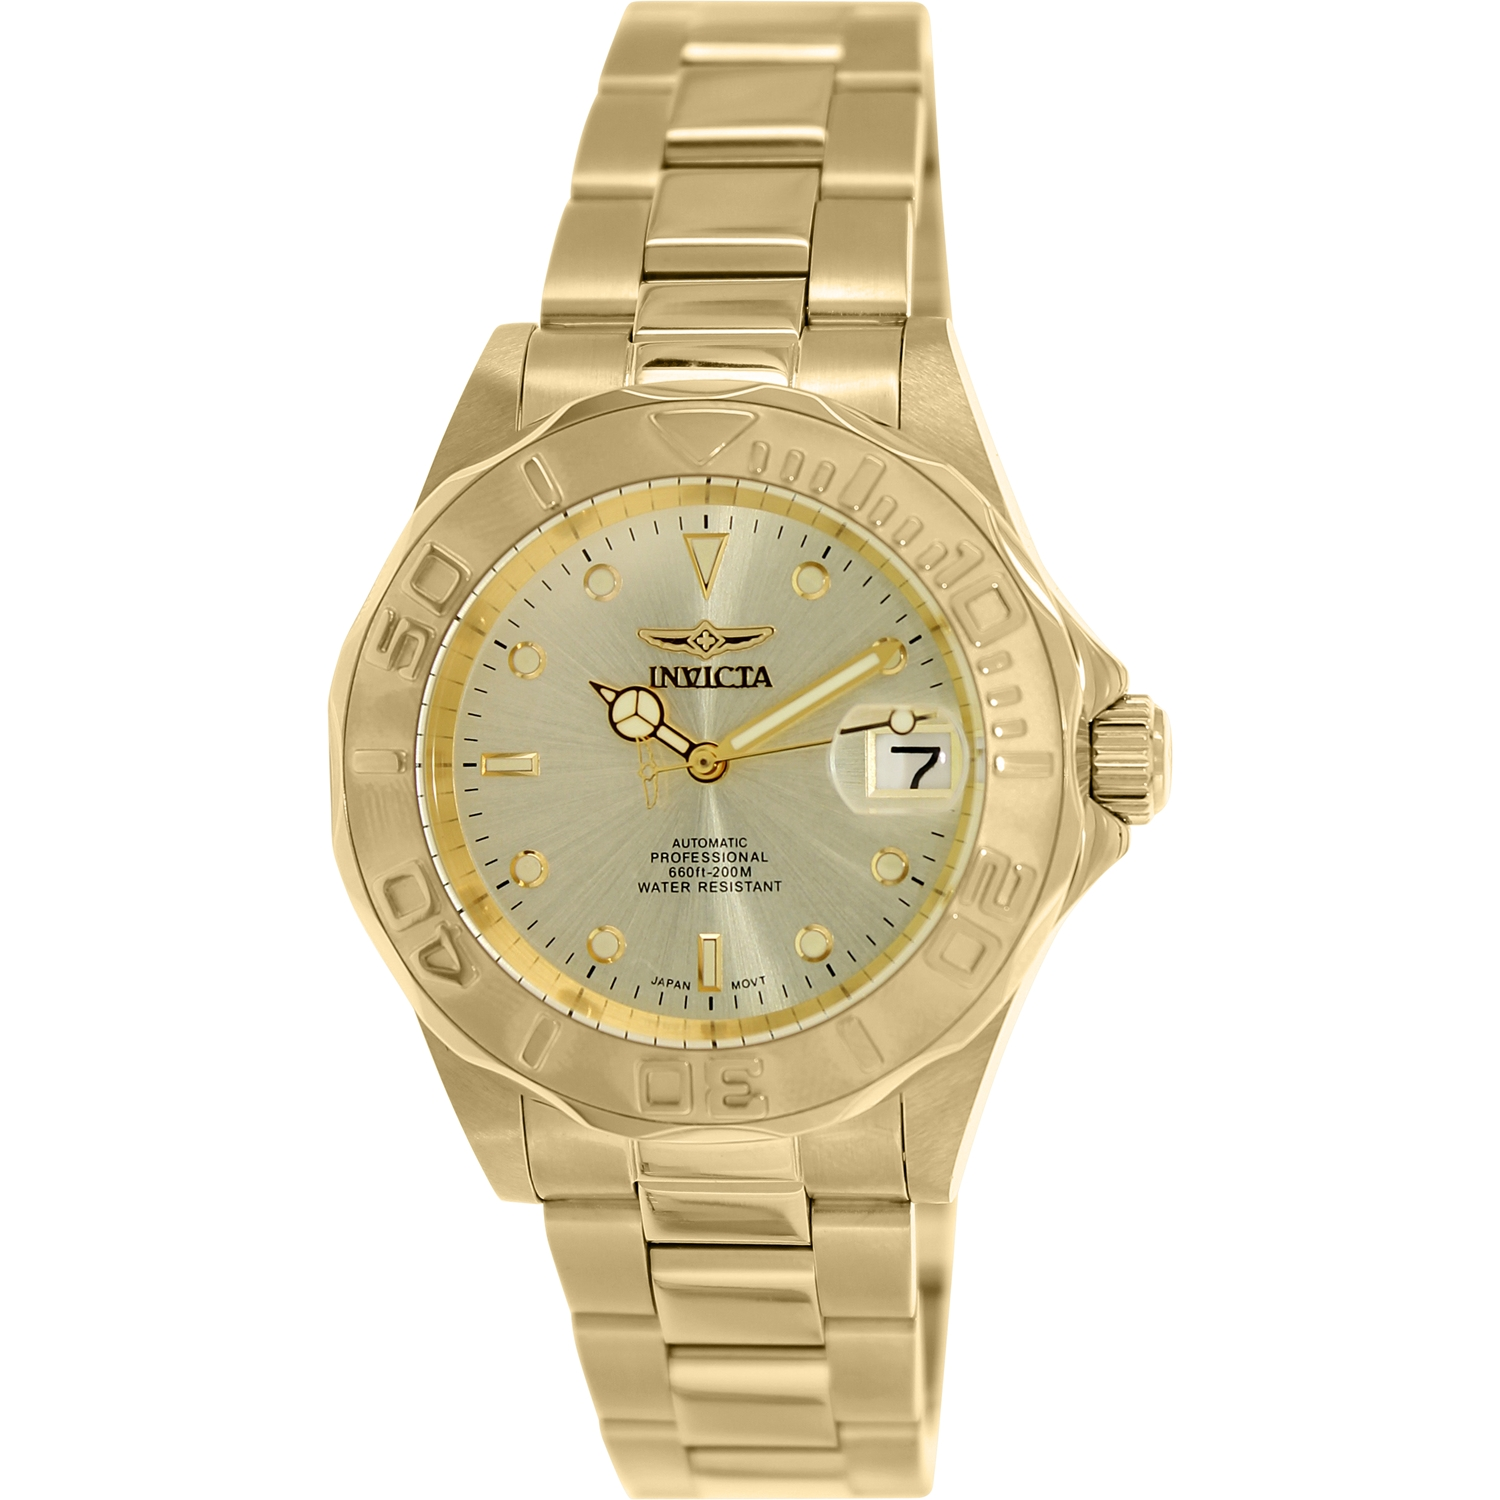 Invicta Men's Men Automatic Pro Diver G2 9010 Gold Stainless-Steel Automatic Diving Watch